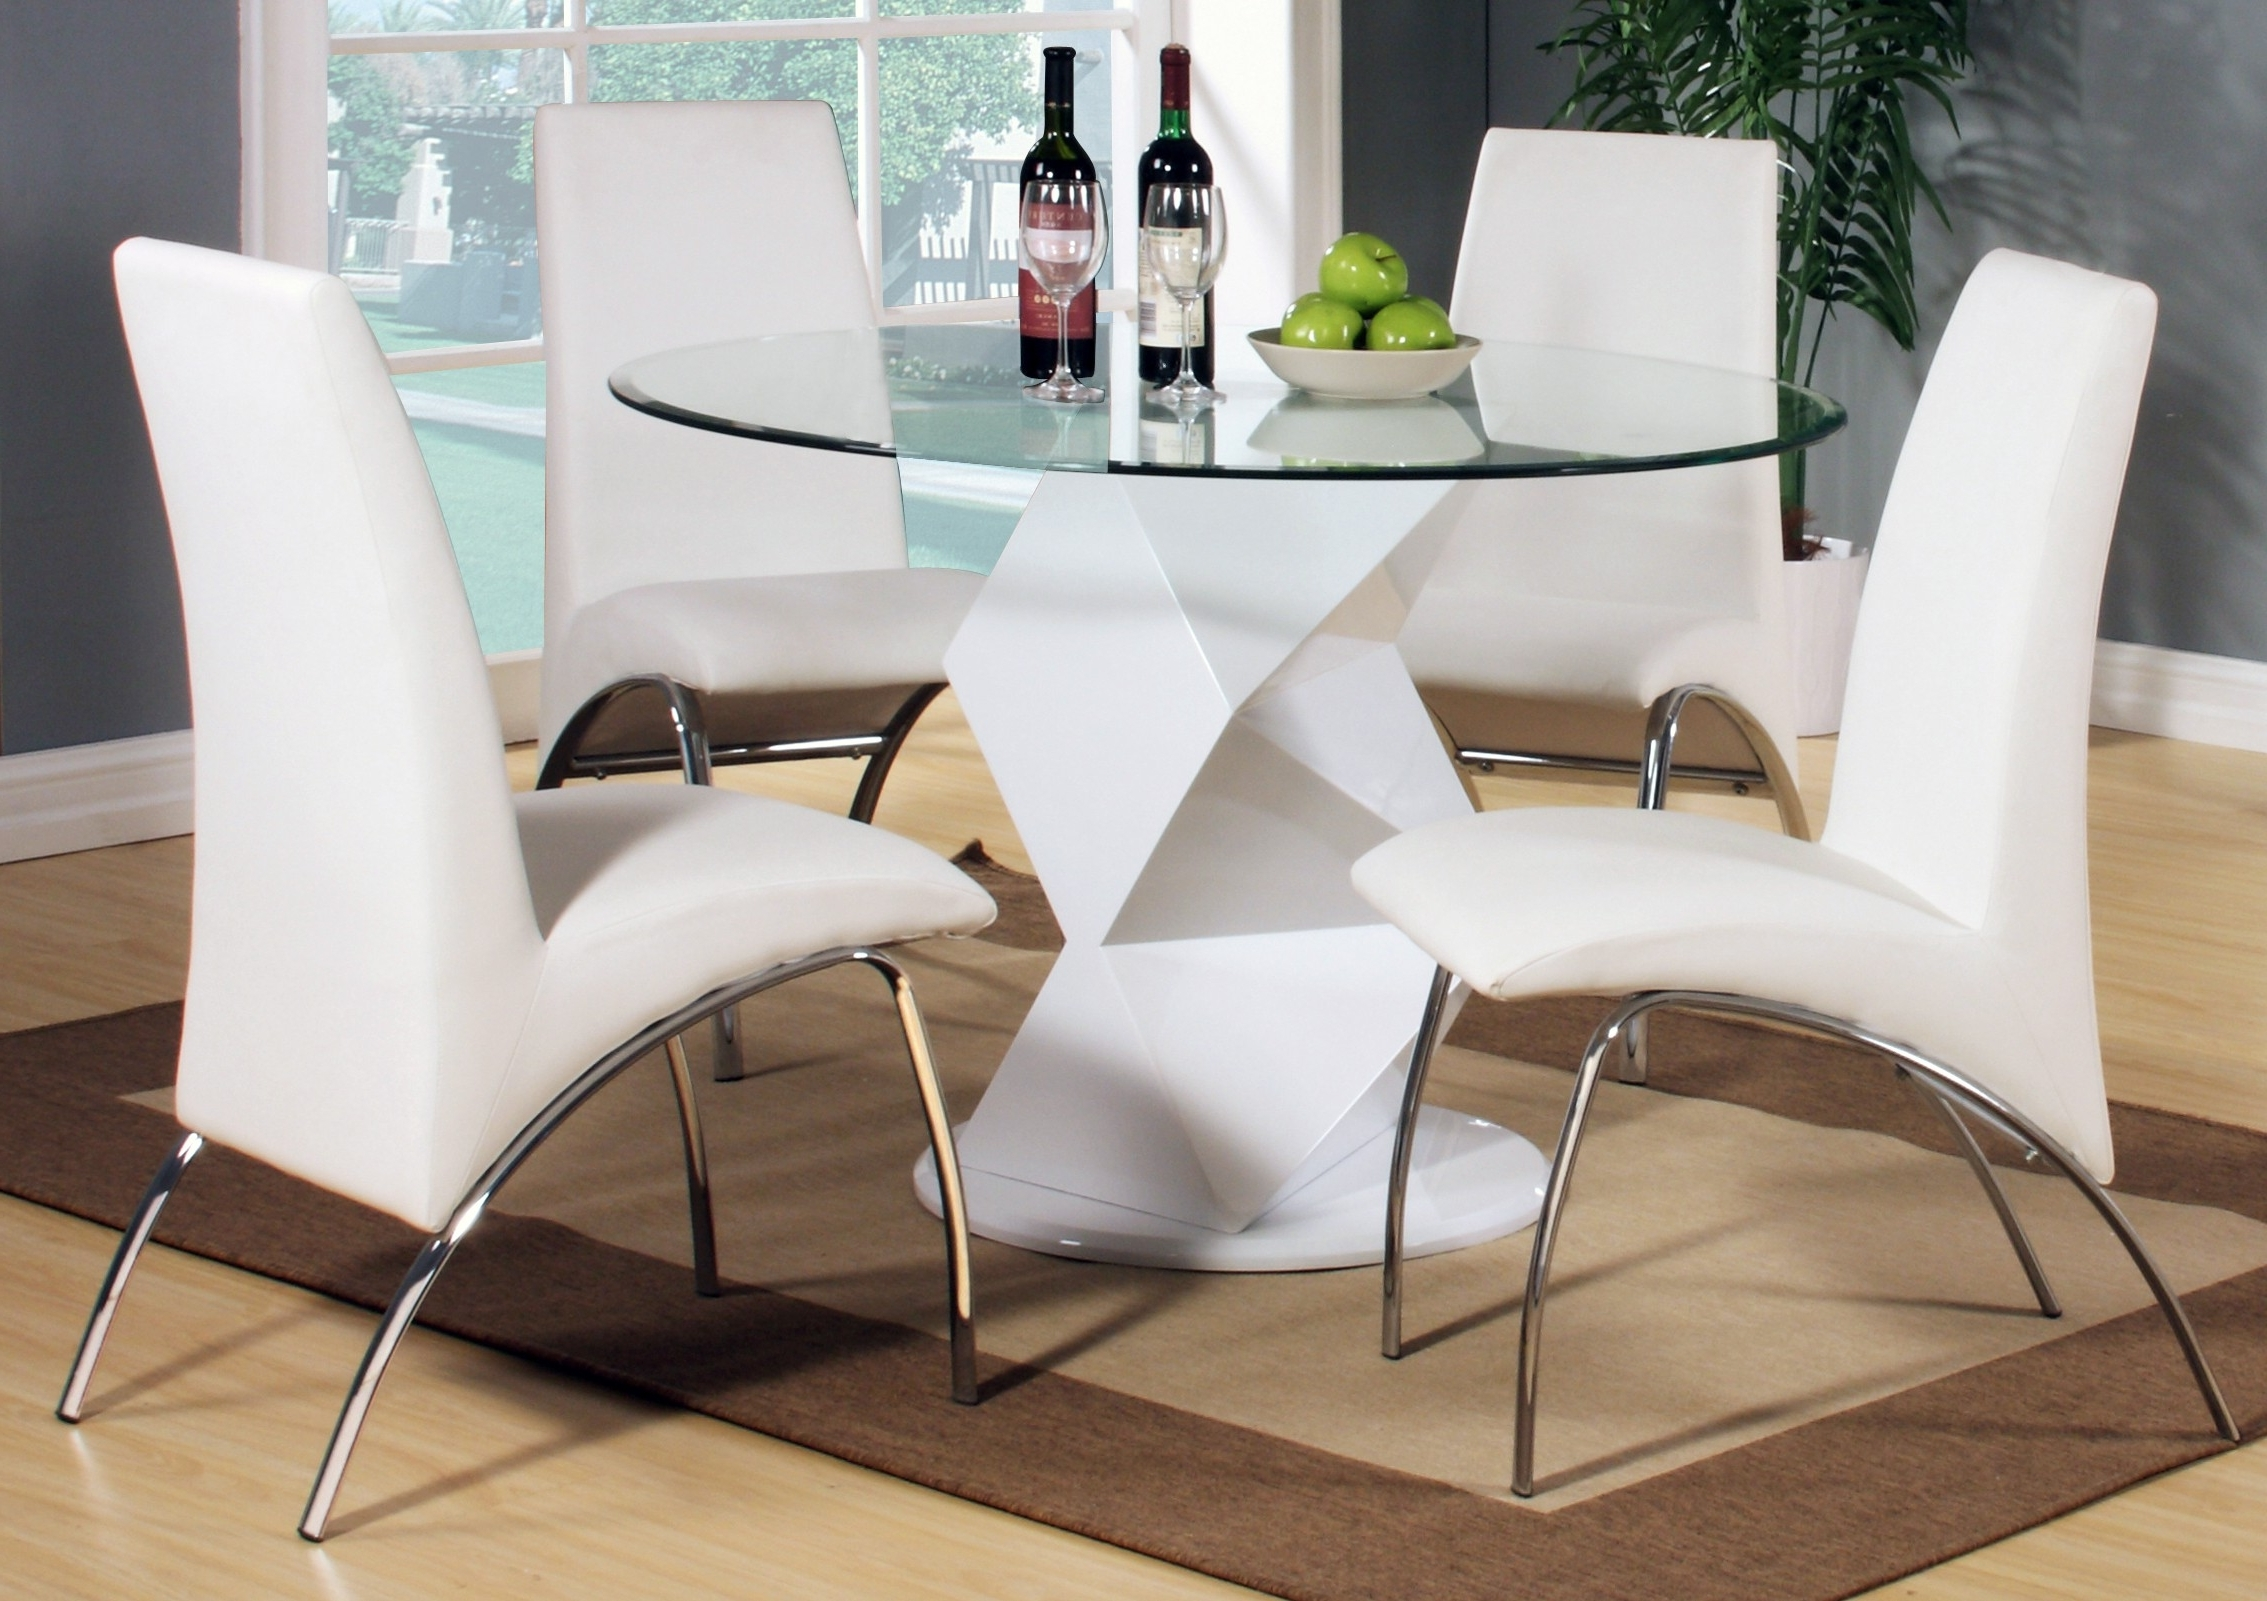 Most Recent Finn White High Gloss Round Dining Table Set 4 Seater In Oval White High Gloss Dining Tables (View 12 of 25)